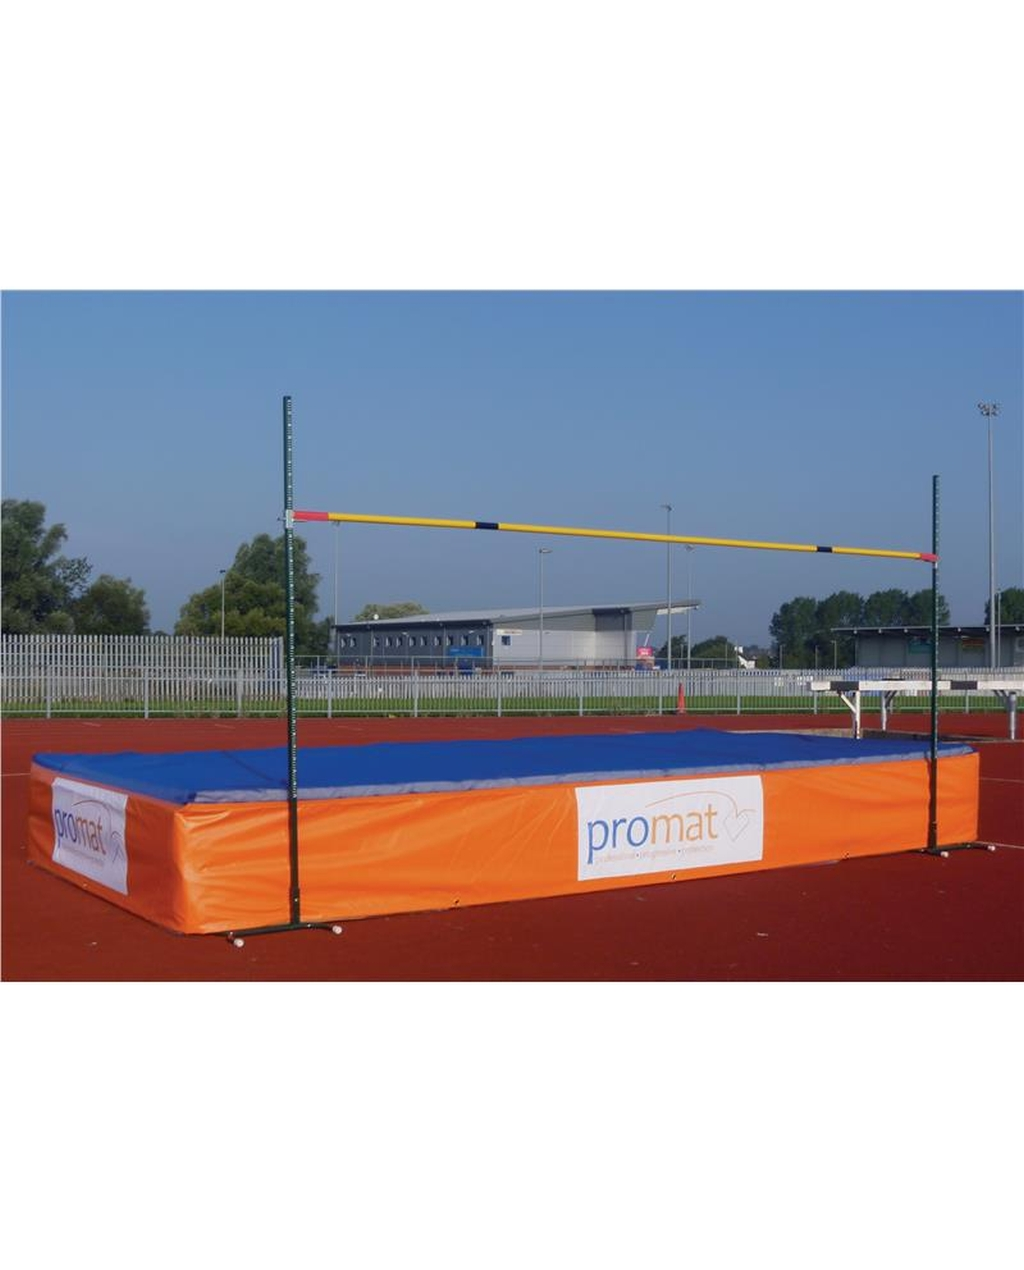 PROMAT SCHOOL HIGH JUMP PRO 7 5M X 2.5M X 560MM WITH SPIKE WEAR SHEET